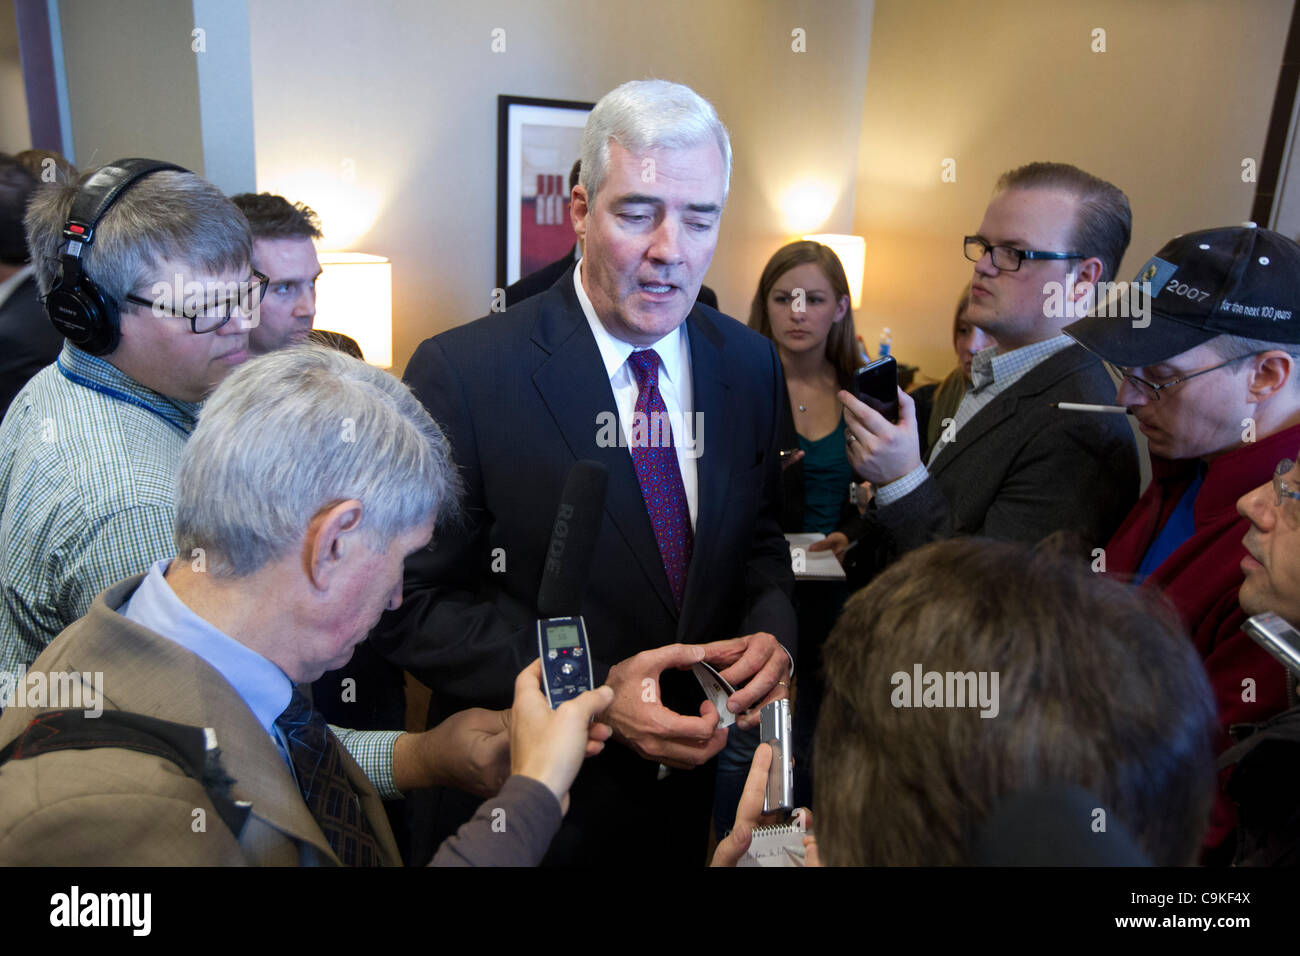 Reporters surround Ray Sullivan, communications director for Republican presidential nominee candidate Rick Perry. - Stock Image